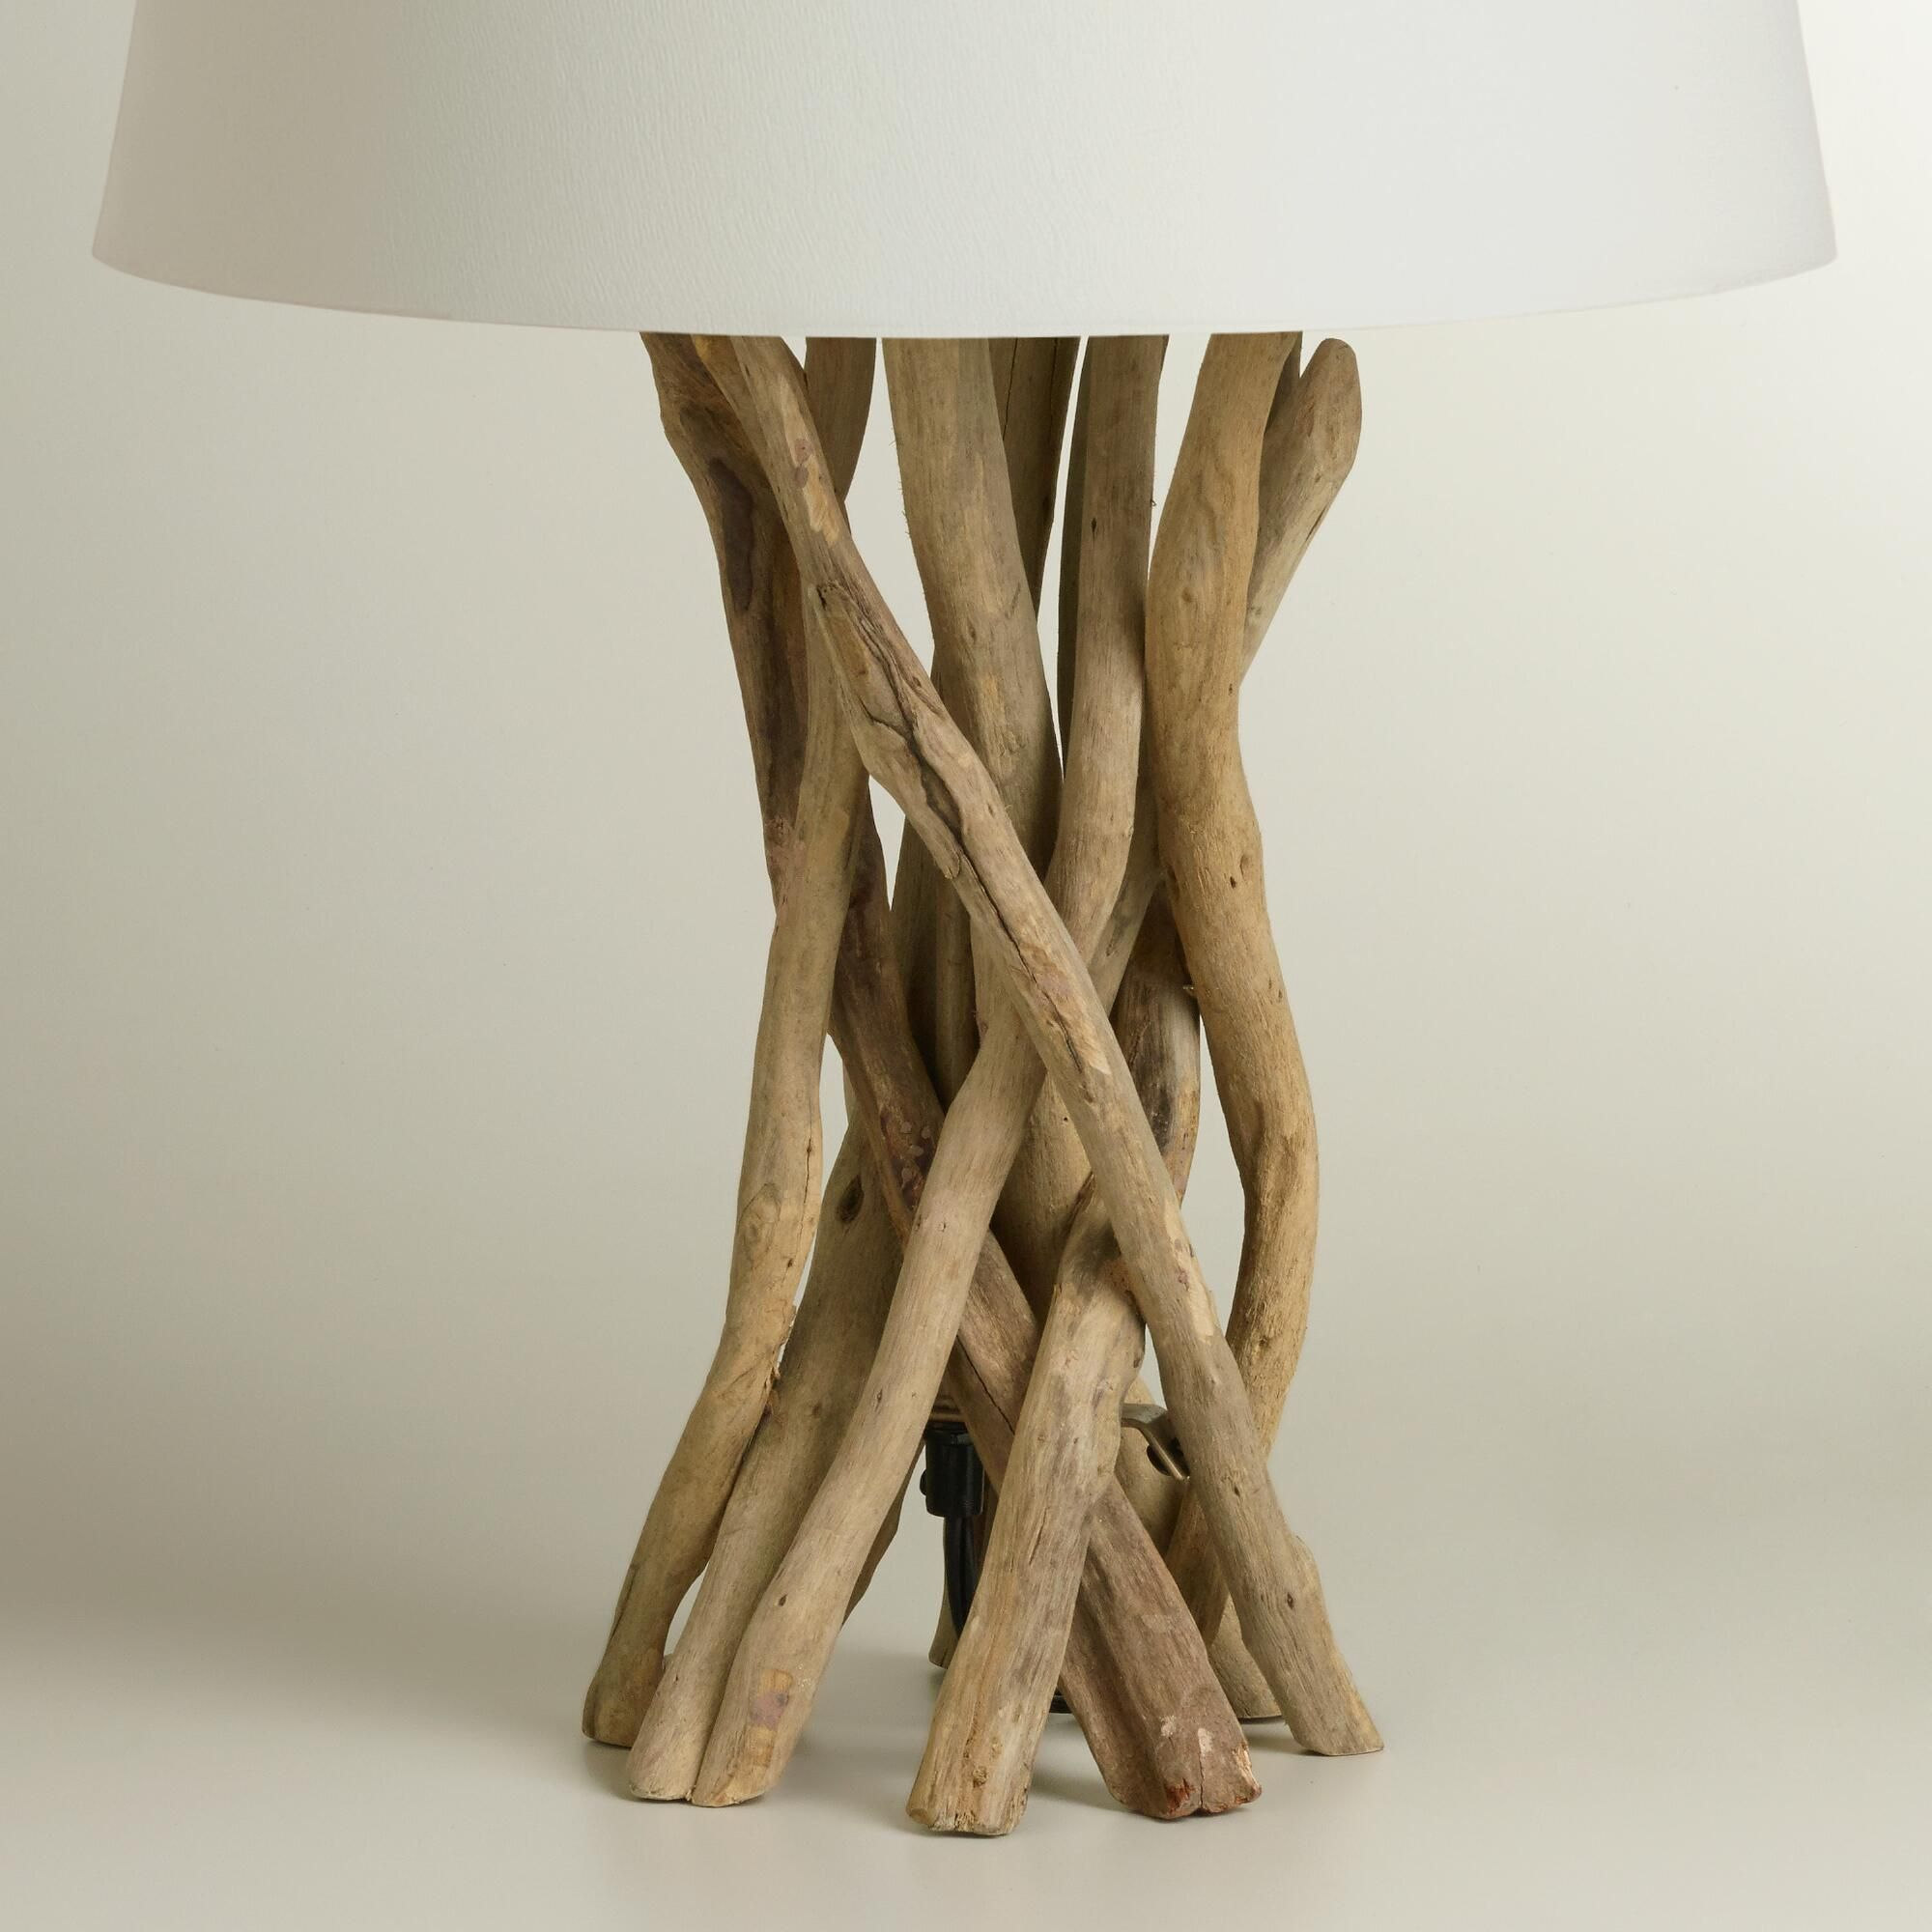 Our exclusive driftwood table lamp base is intricately hand our exclusive driftwood table lamp base is intricately hand assembled by skilled artisans in the philippines mozeypictures Image collections